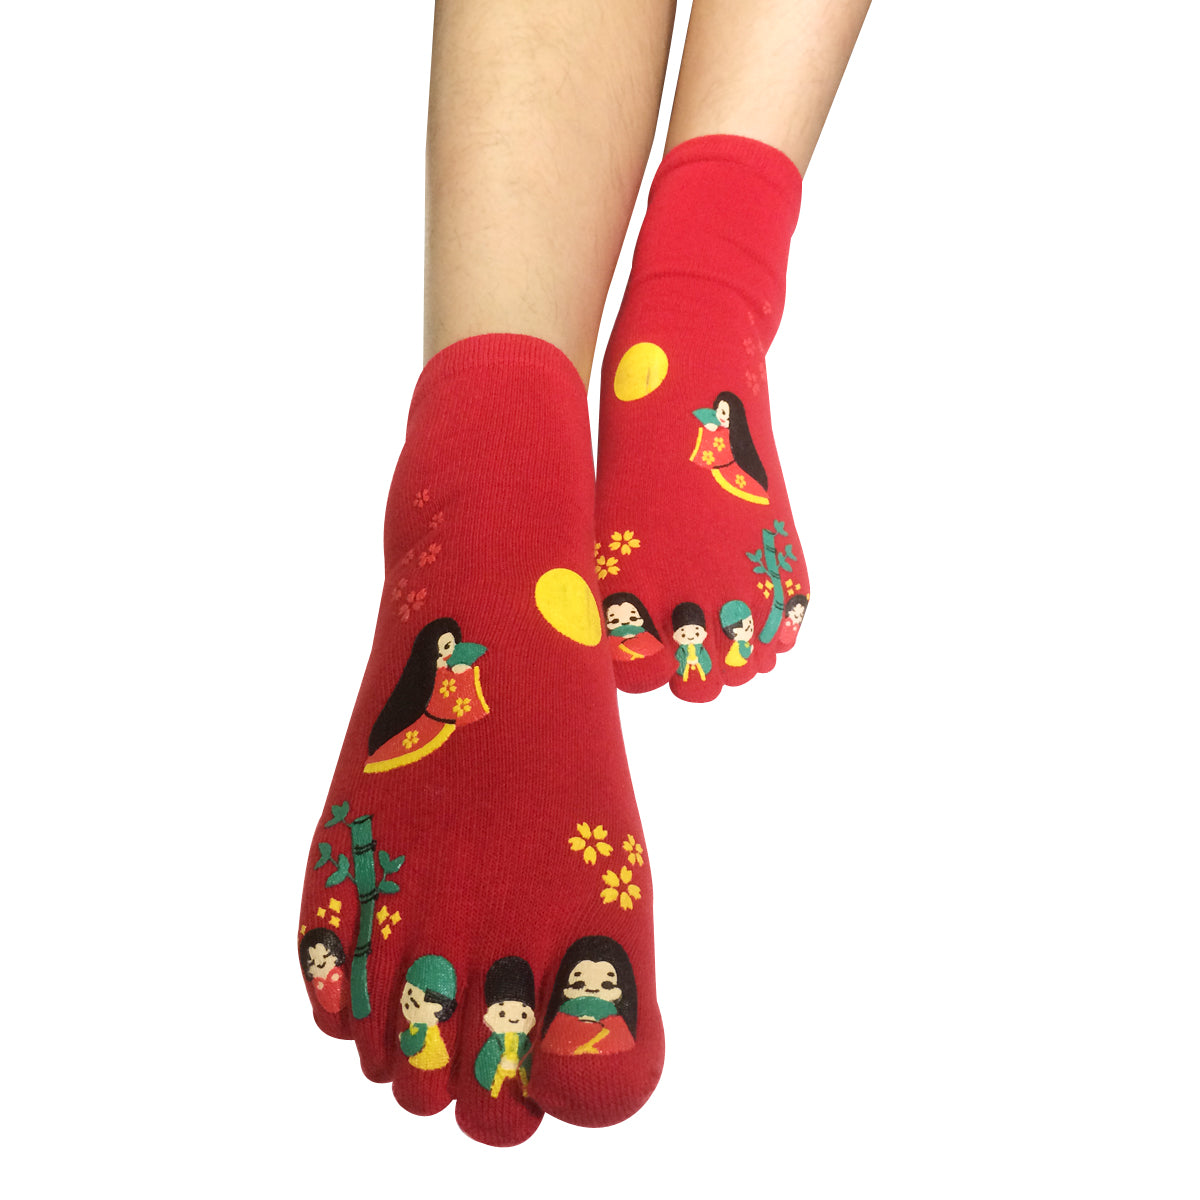 Wrapables Japanese Girl Cartoon Socks Five Toe Socks (Set of 3)